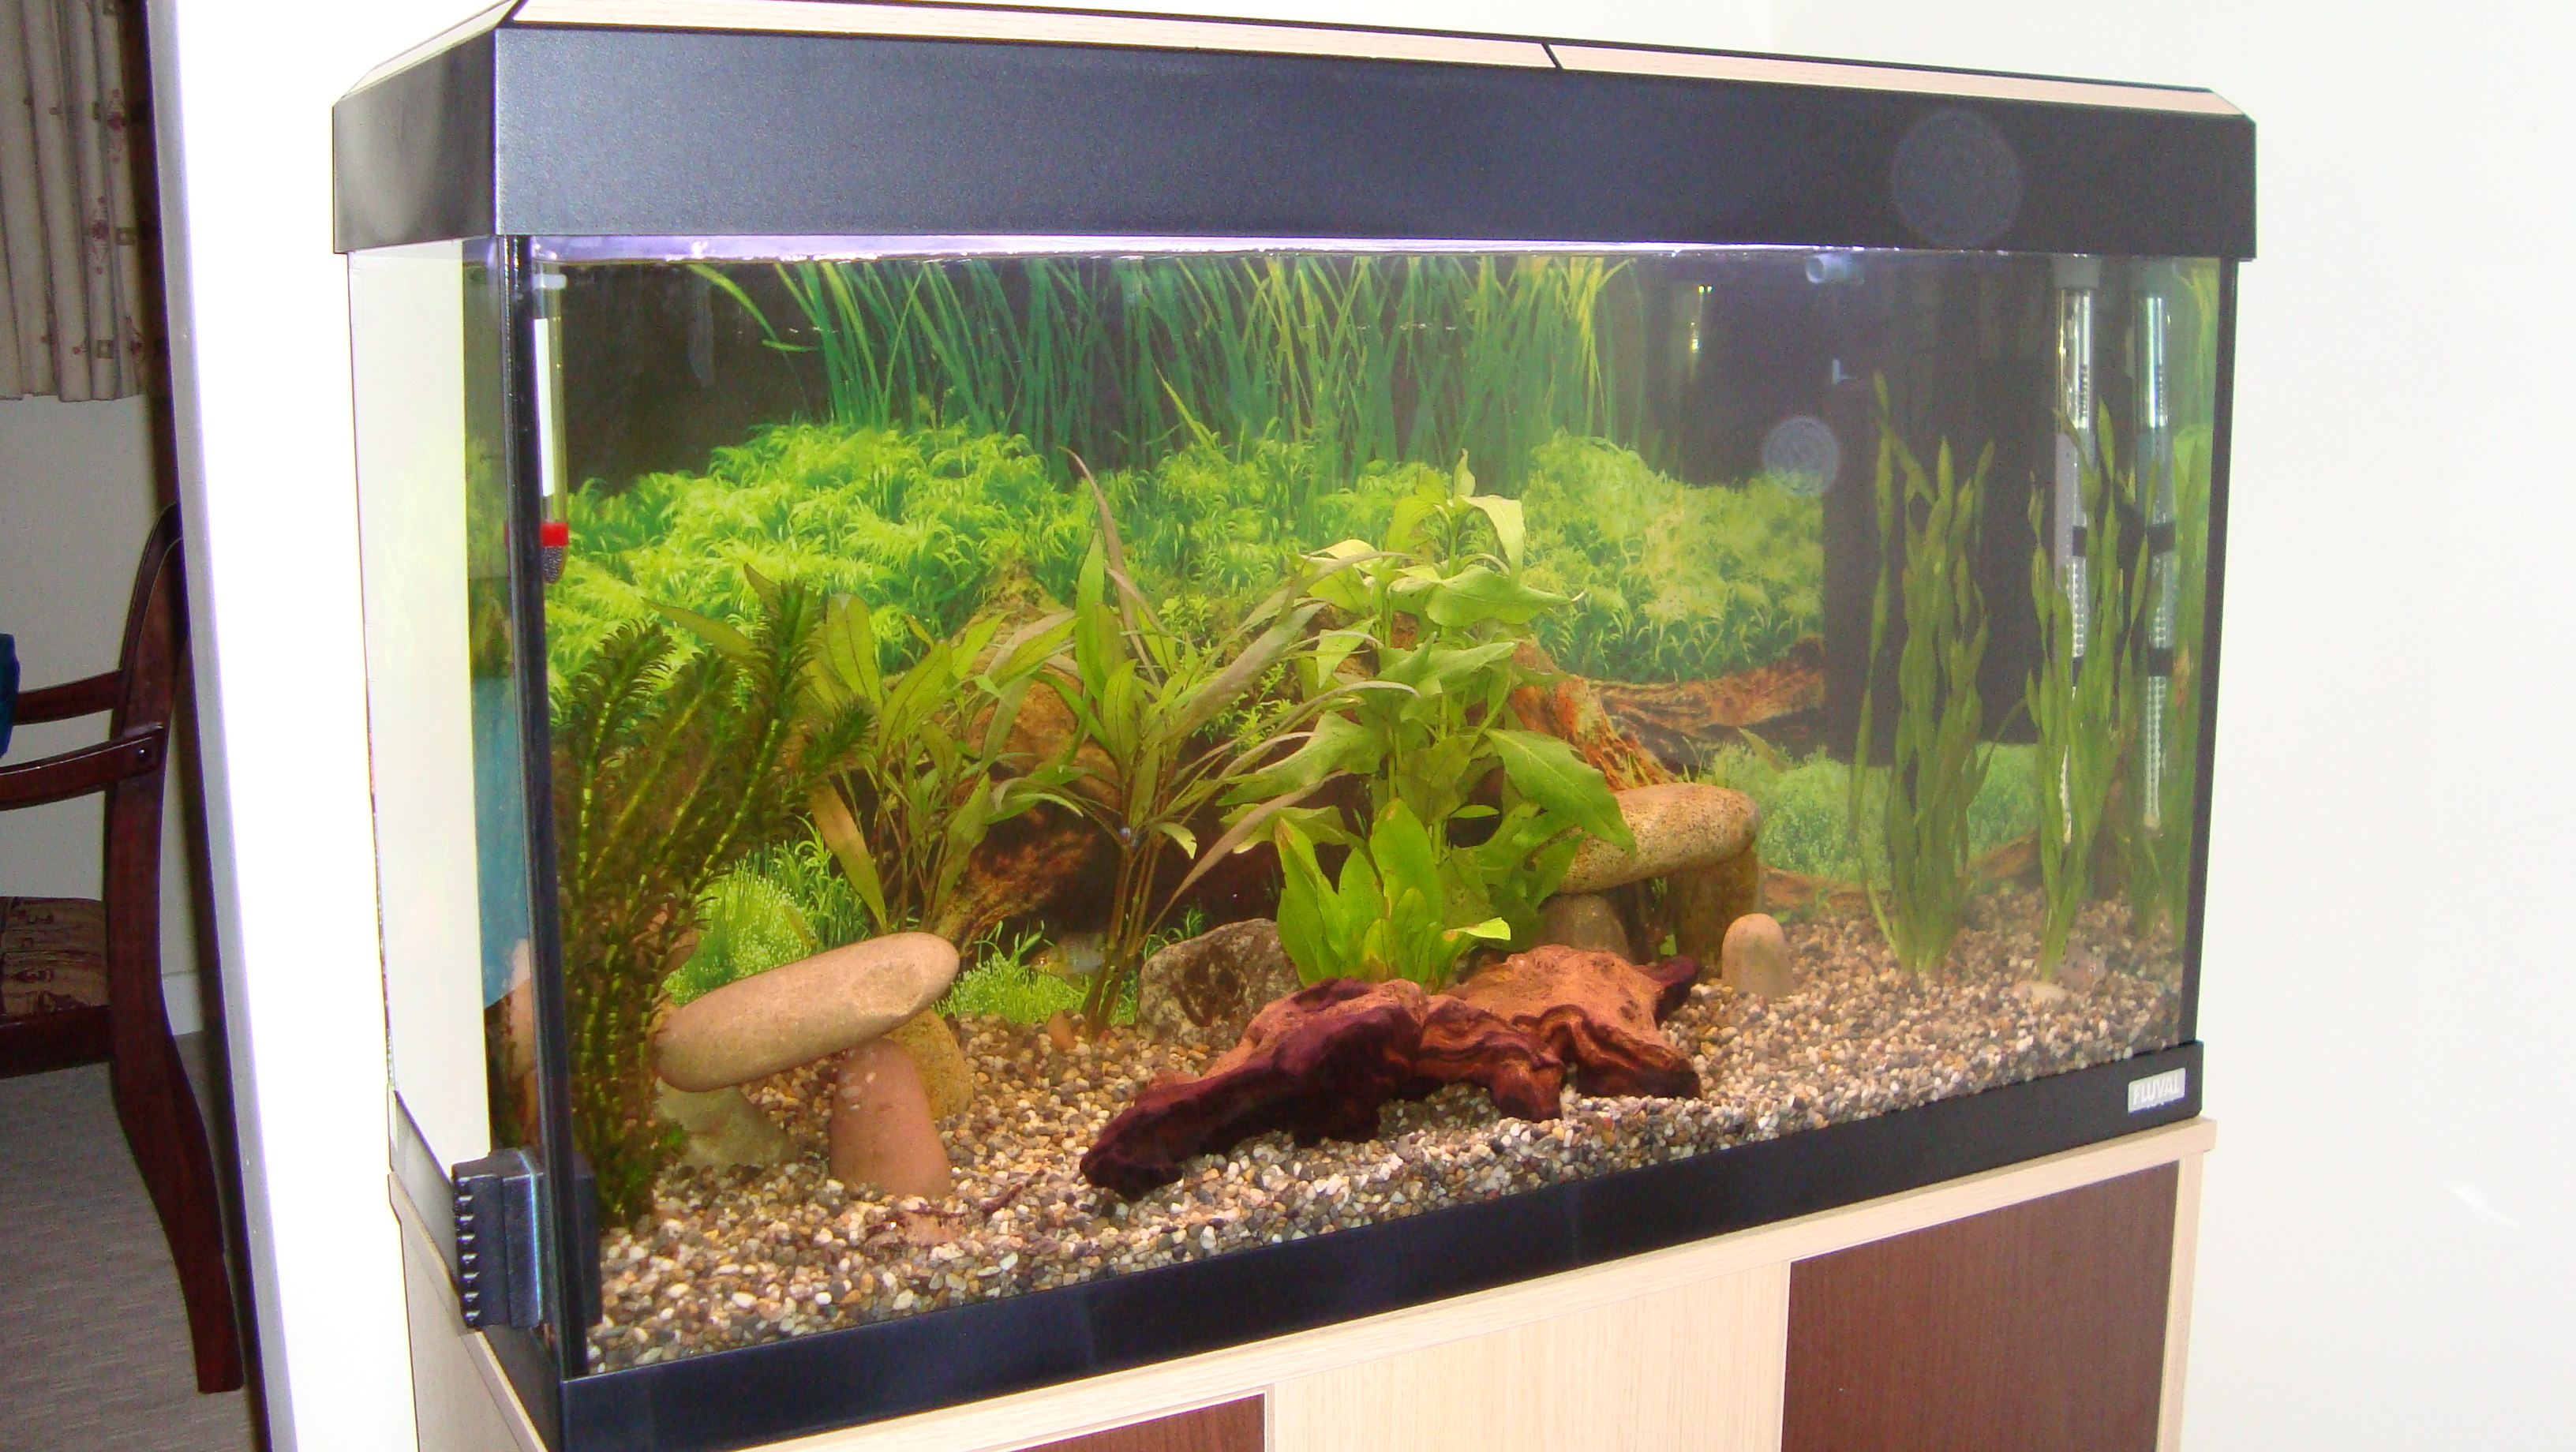 30 gallon fish tank in litres tank Thirty gallon fish tank